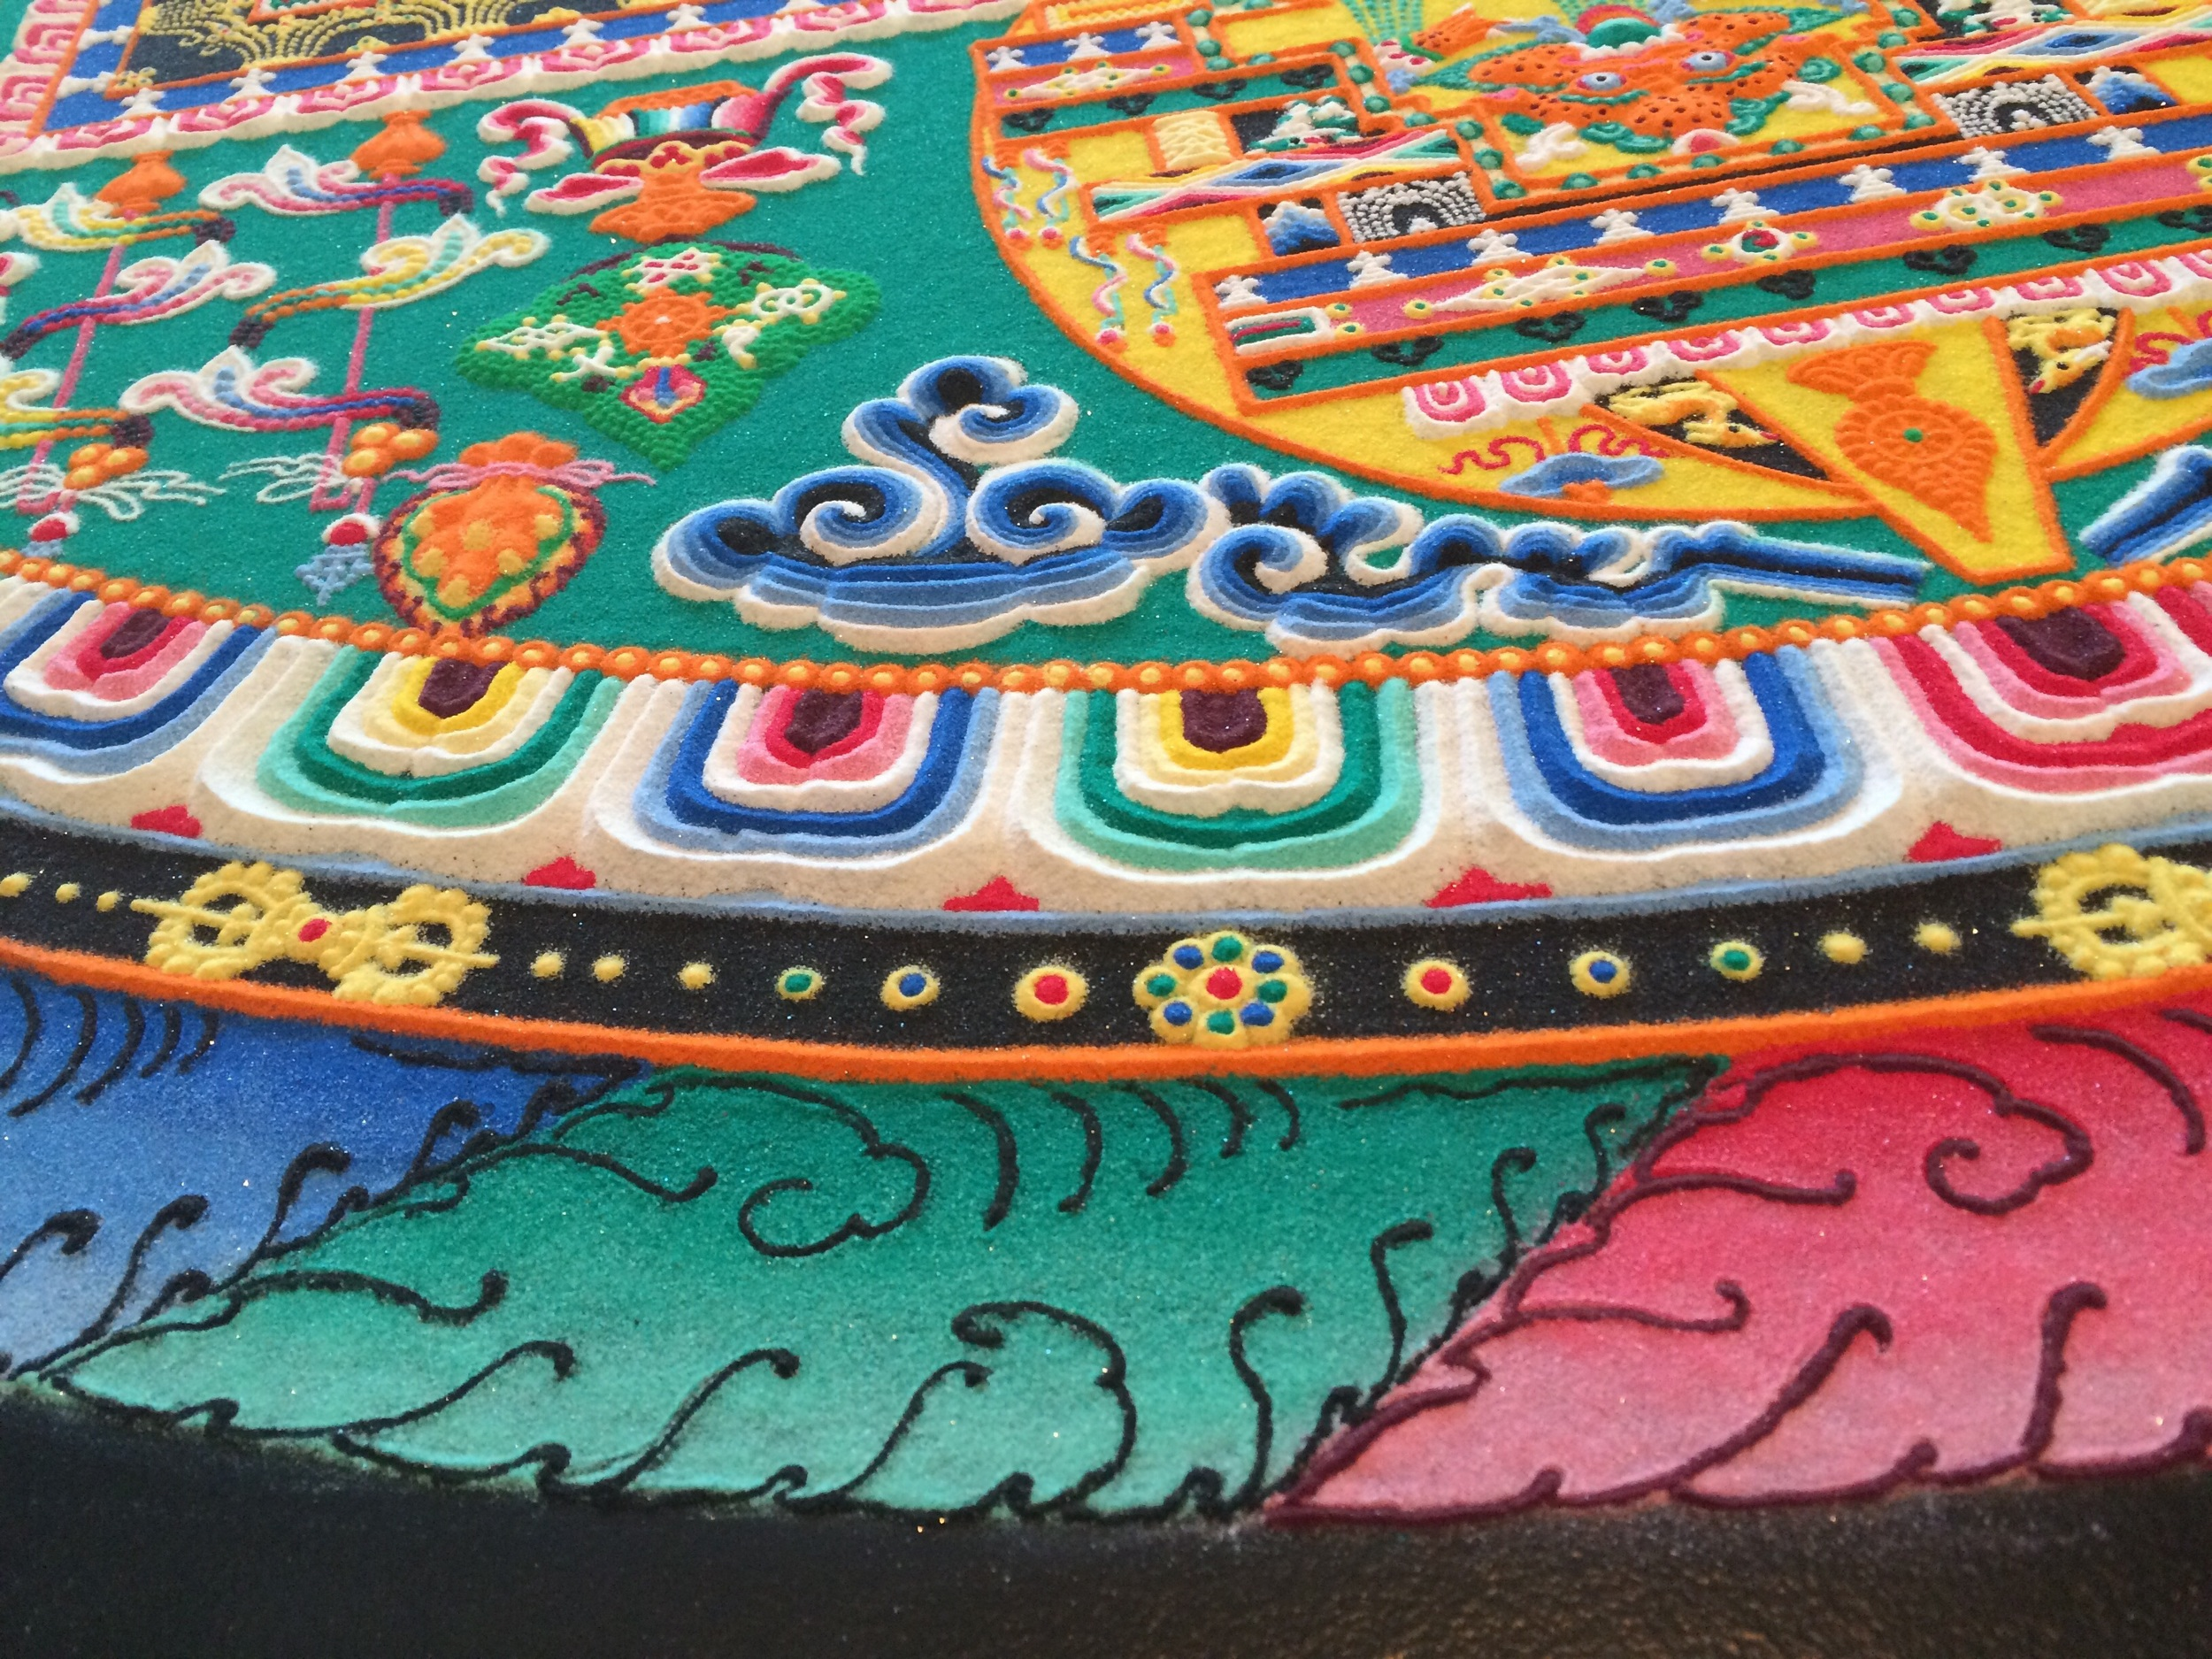 The intricacies of a Tibetan Sand Mandala--complex, masterful, and with multitudes of individual aspects making a complete entity.